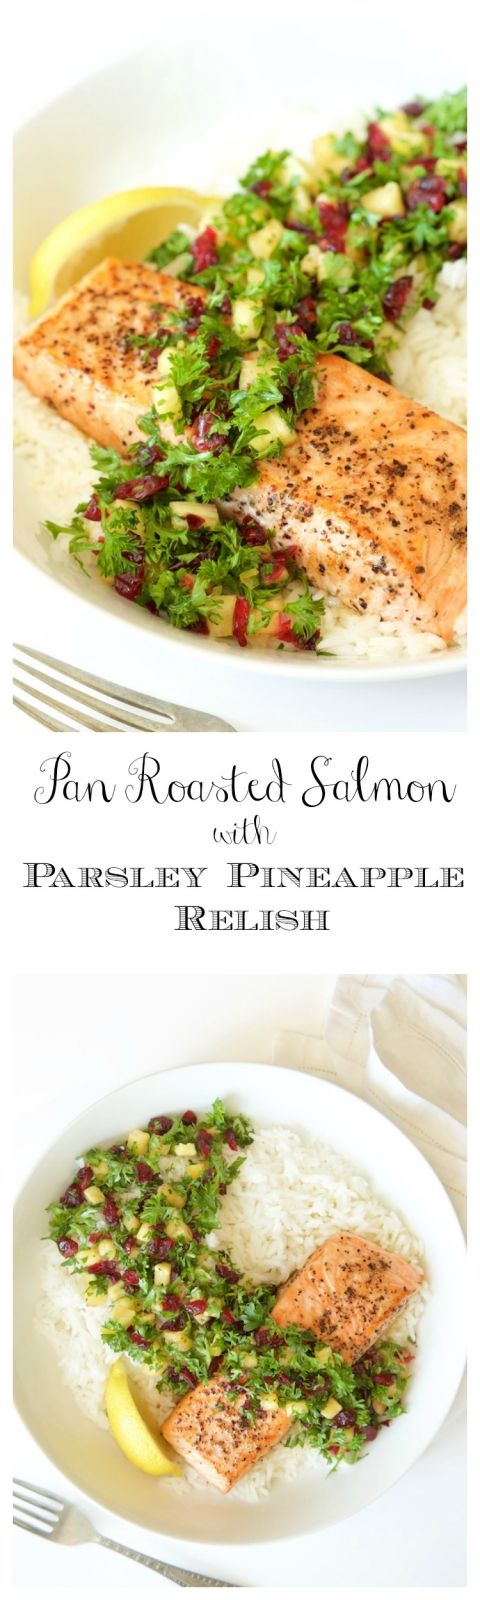 Pan Roasted Salmon with Parsley Pineapple Relish - a healthy delicious dinner that comes together in less than 30 minutes! The relish takes simple salmon to dinner party status!